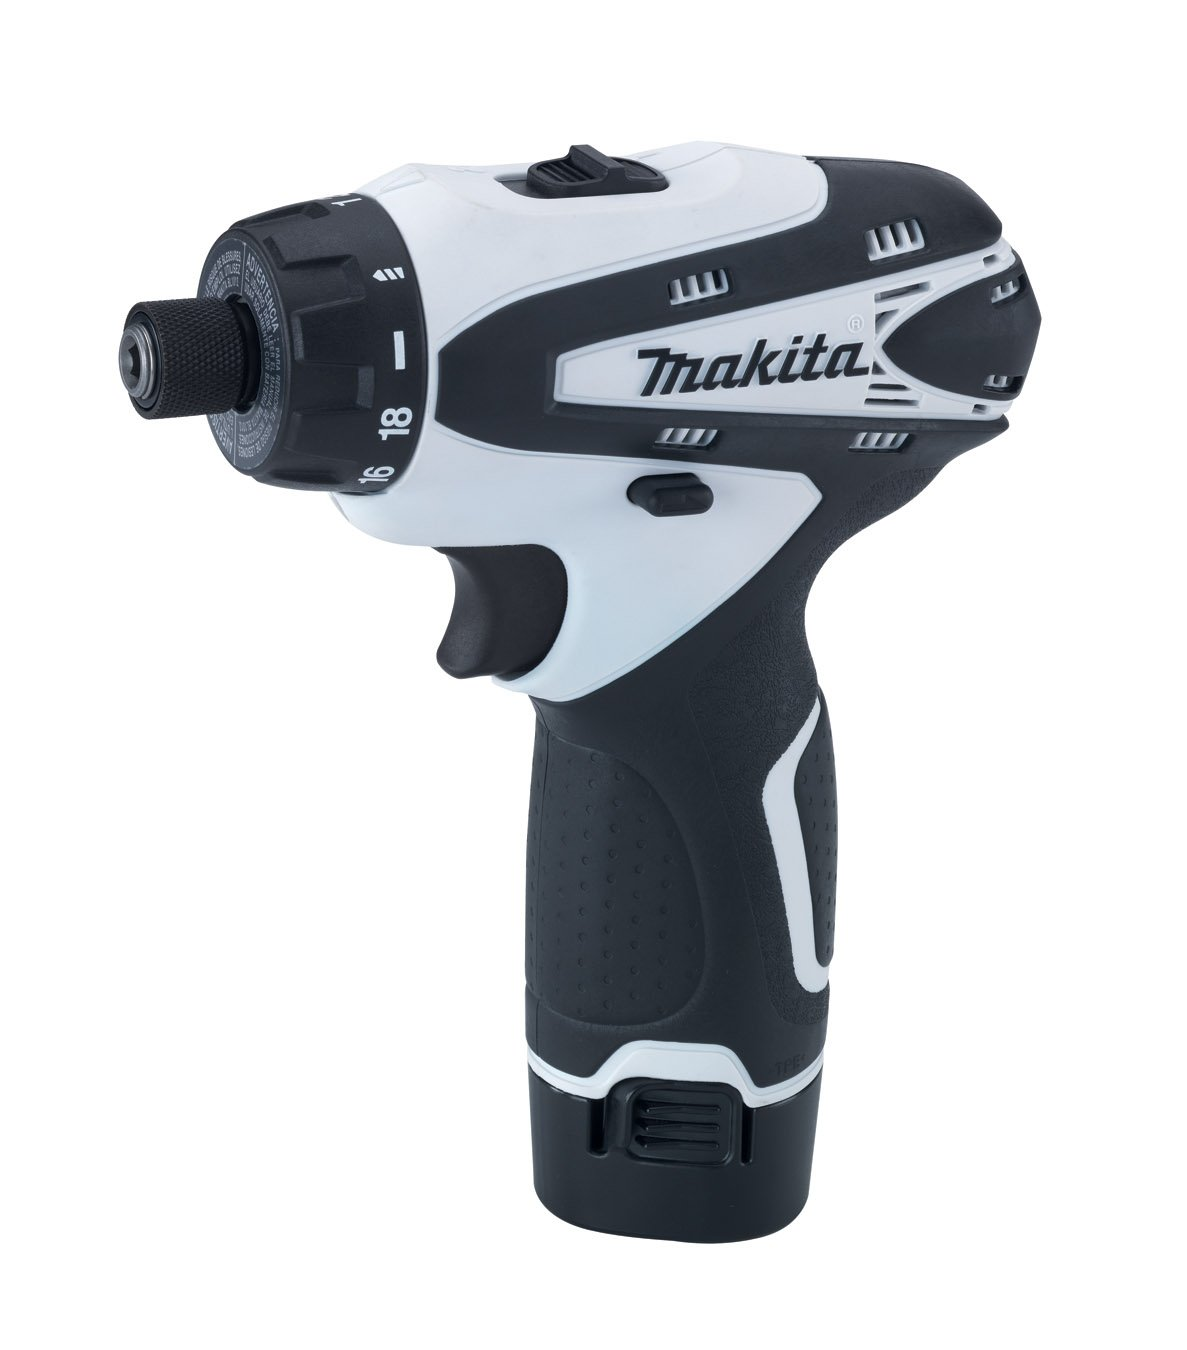 Beste Boormachine The 4 Best Cordless Drills For Your Money To Handle Any Job